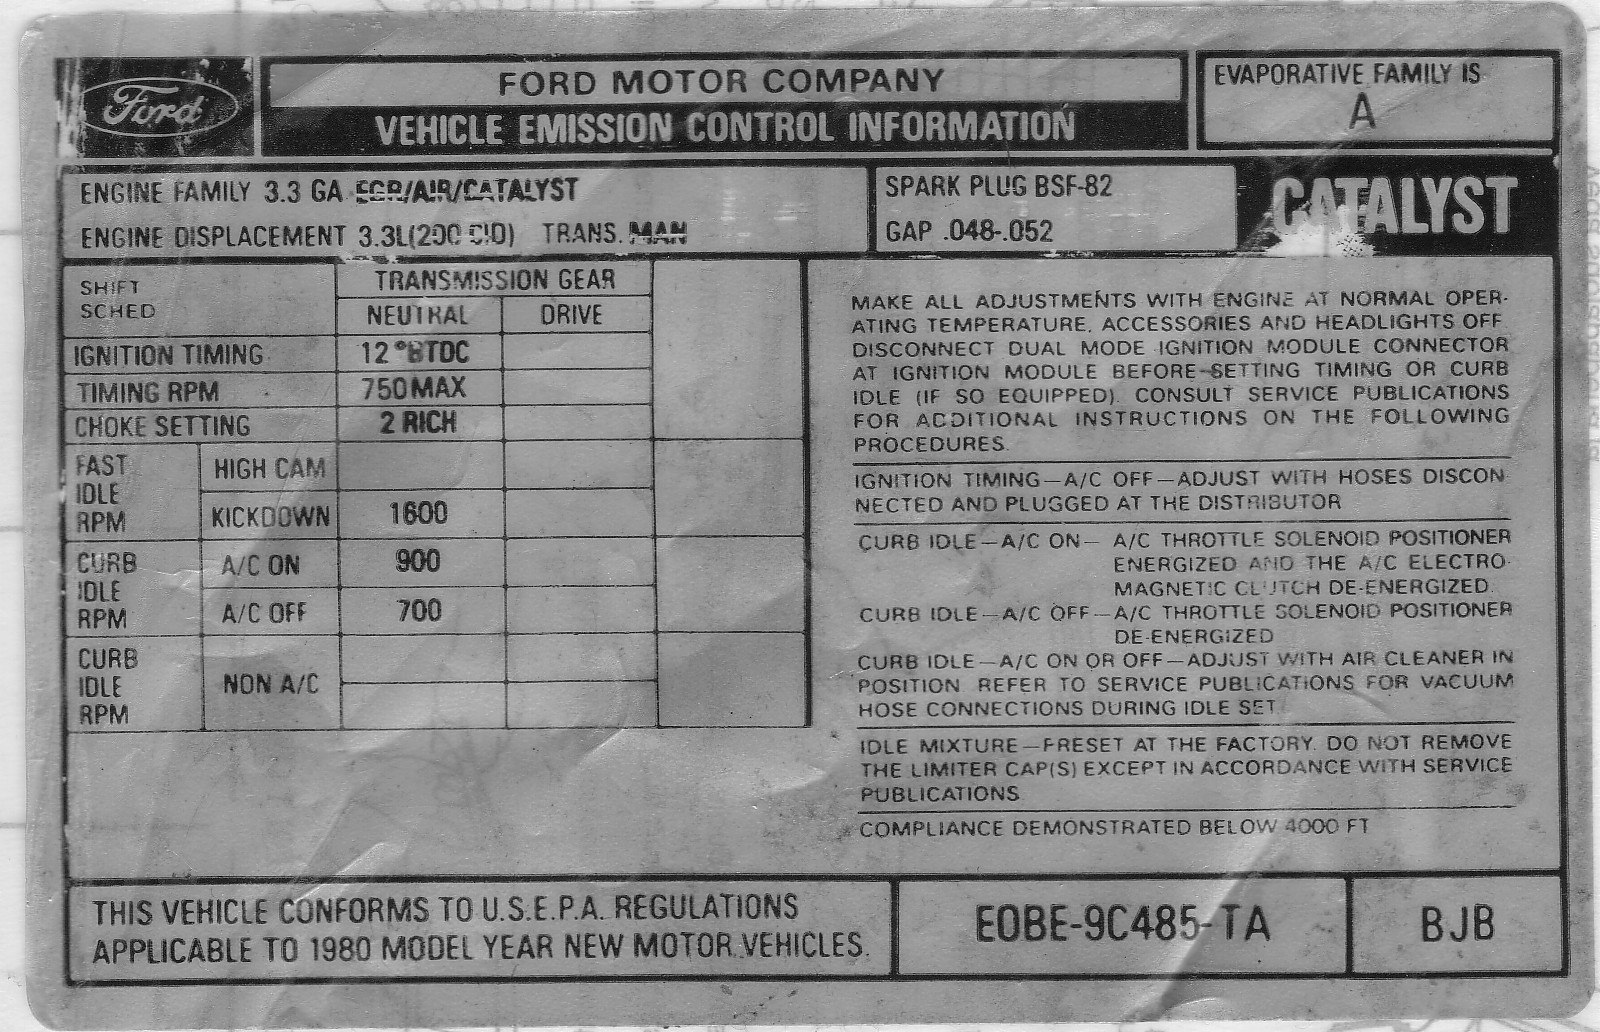 Ford 33 Vacuum Lining 1983 Toyota Pickup Diagram Here It Is In The Natural Holley 1946 With Common 12b Calibration 1 R0 1981 Plenty Of 1980 Cars Used Later To Emission System